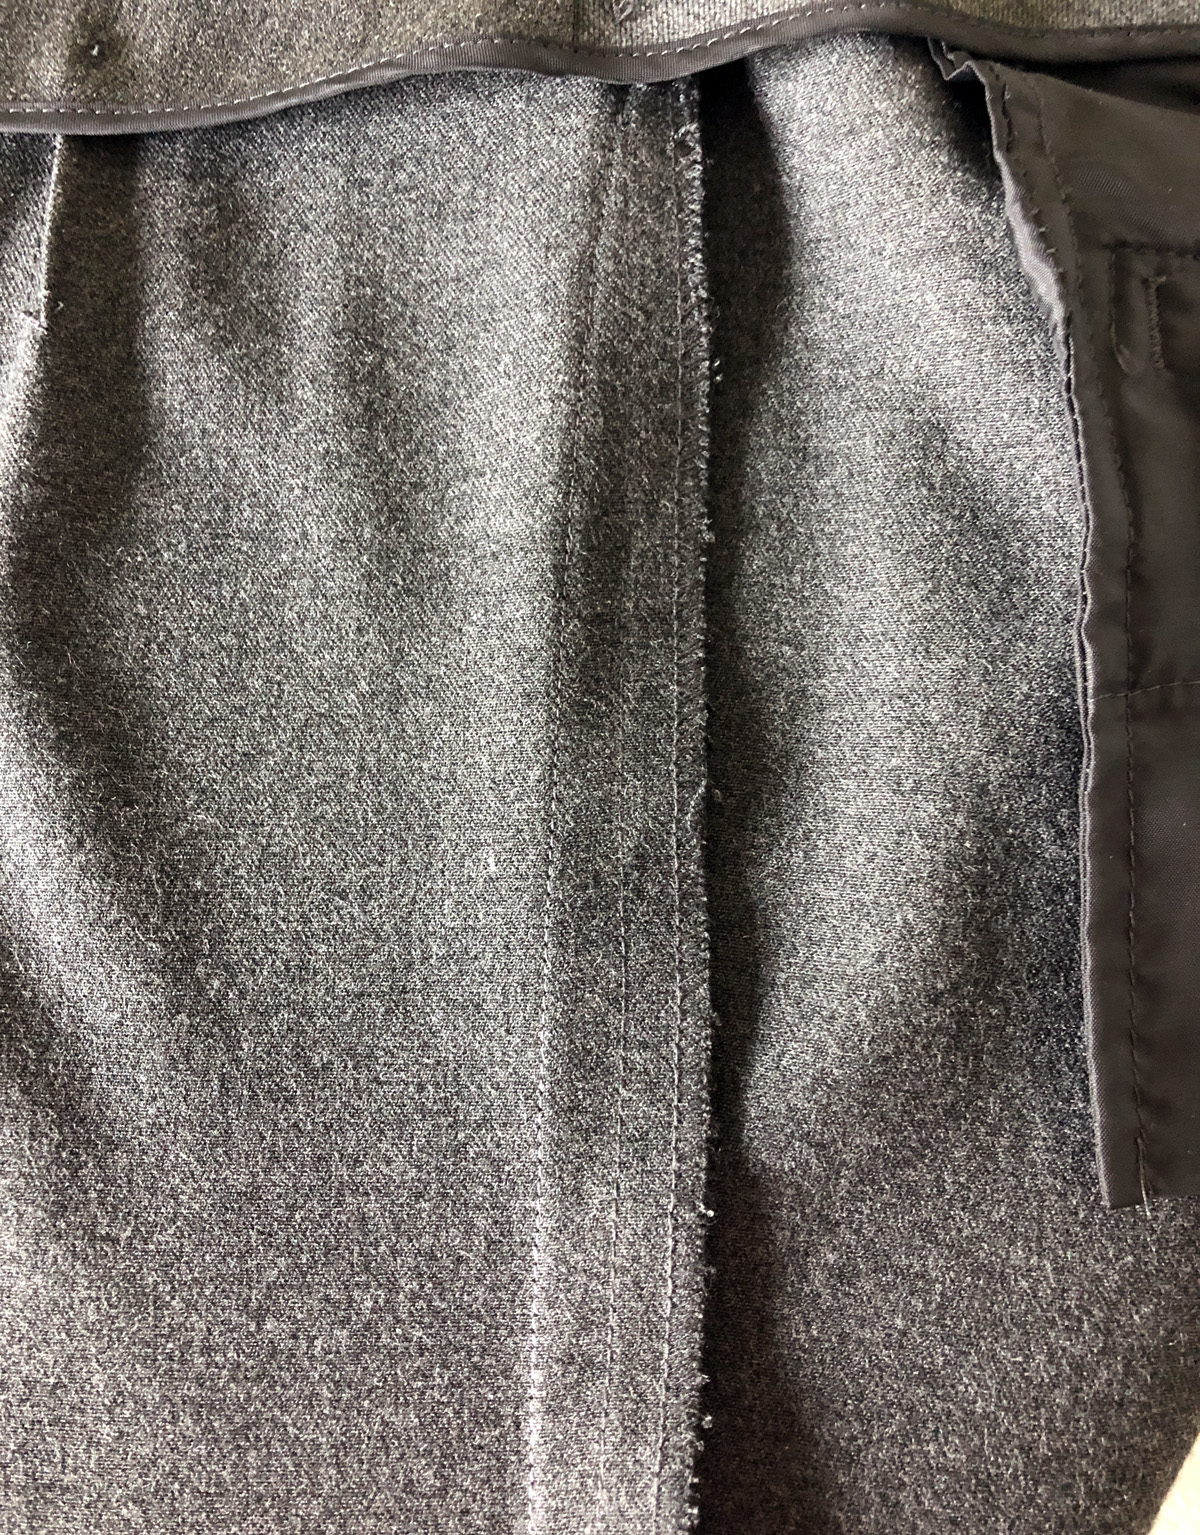 Closeup of a pants side seam, from the pants interior